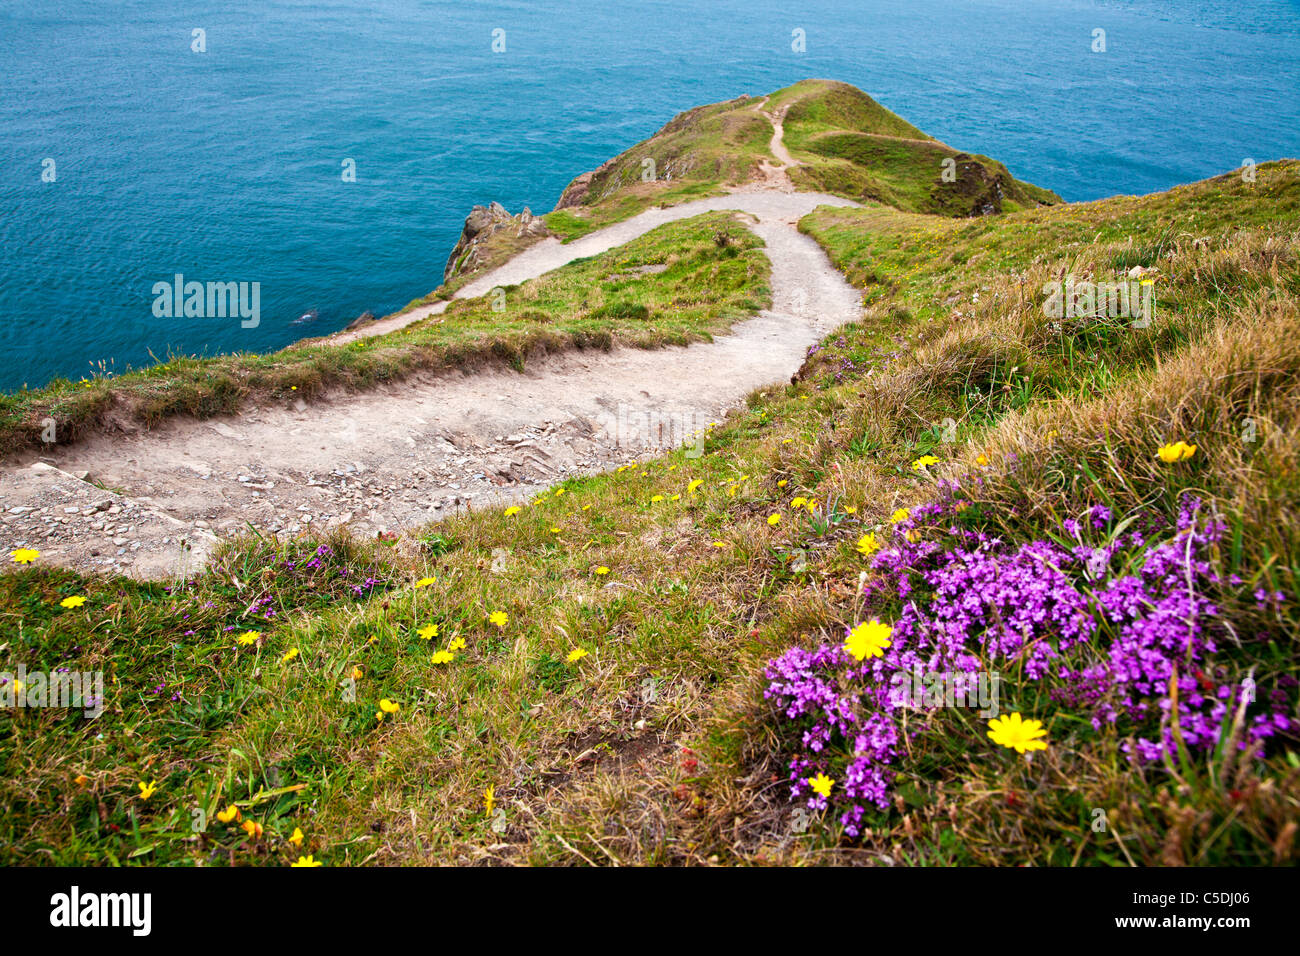 View of Baggy Point a headland near Croyde, North Devon, England, UK Stock Photo